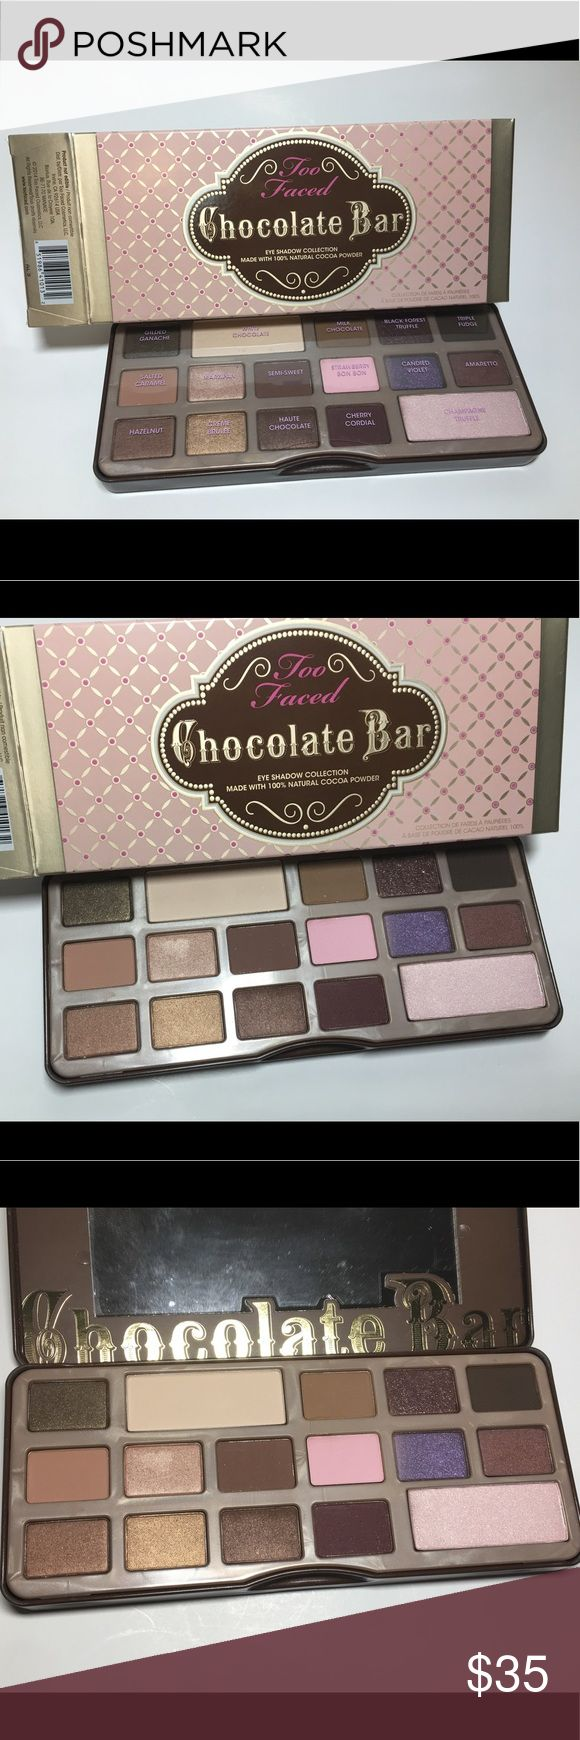 NIB Too Faced Chocolate Bar. Cocoa powder. 100% NIB Too Faced Chocolate Bar. Made with 100% Cocoa Powder. Some scratches on Palette and some Eyeshadows. 100% Authentic. Please see pictures as this is the actual item you will receive. Please feel free to ask any questions and I will get back to you as soon as possible. Thank you! Too Faced Makeup Eyeshadow